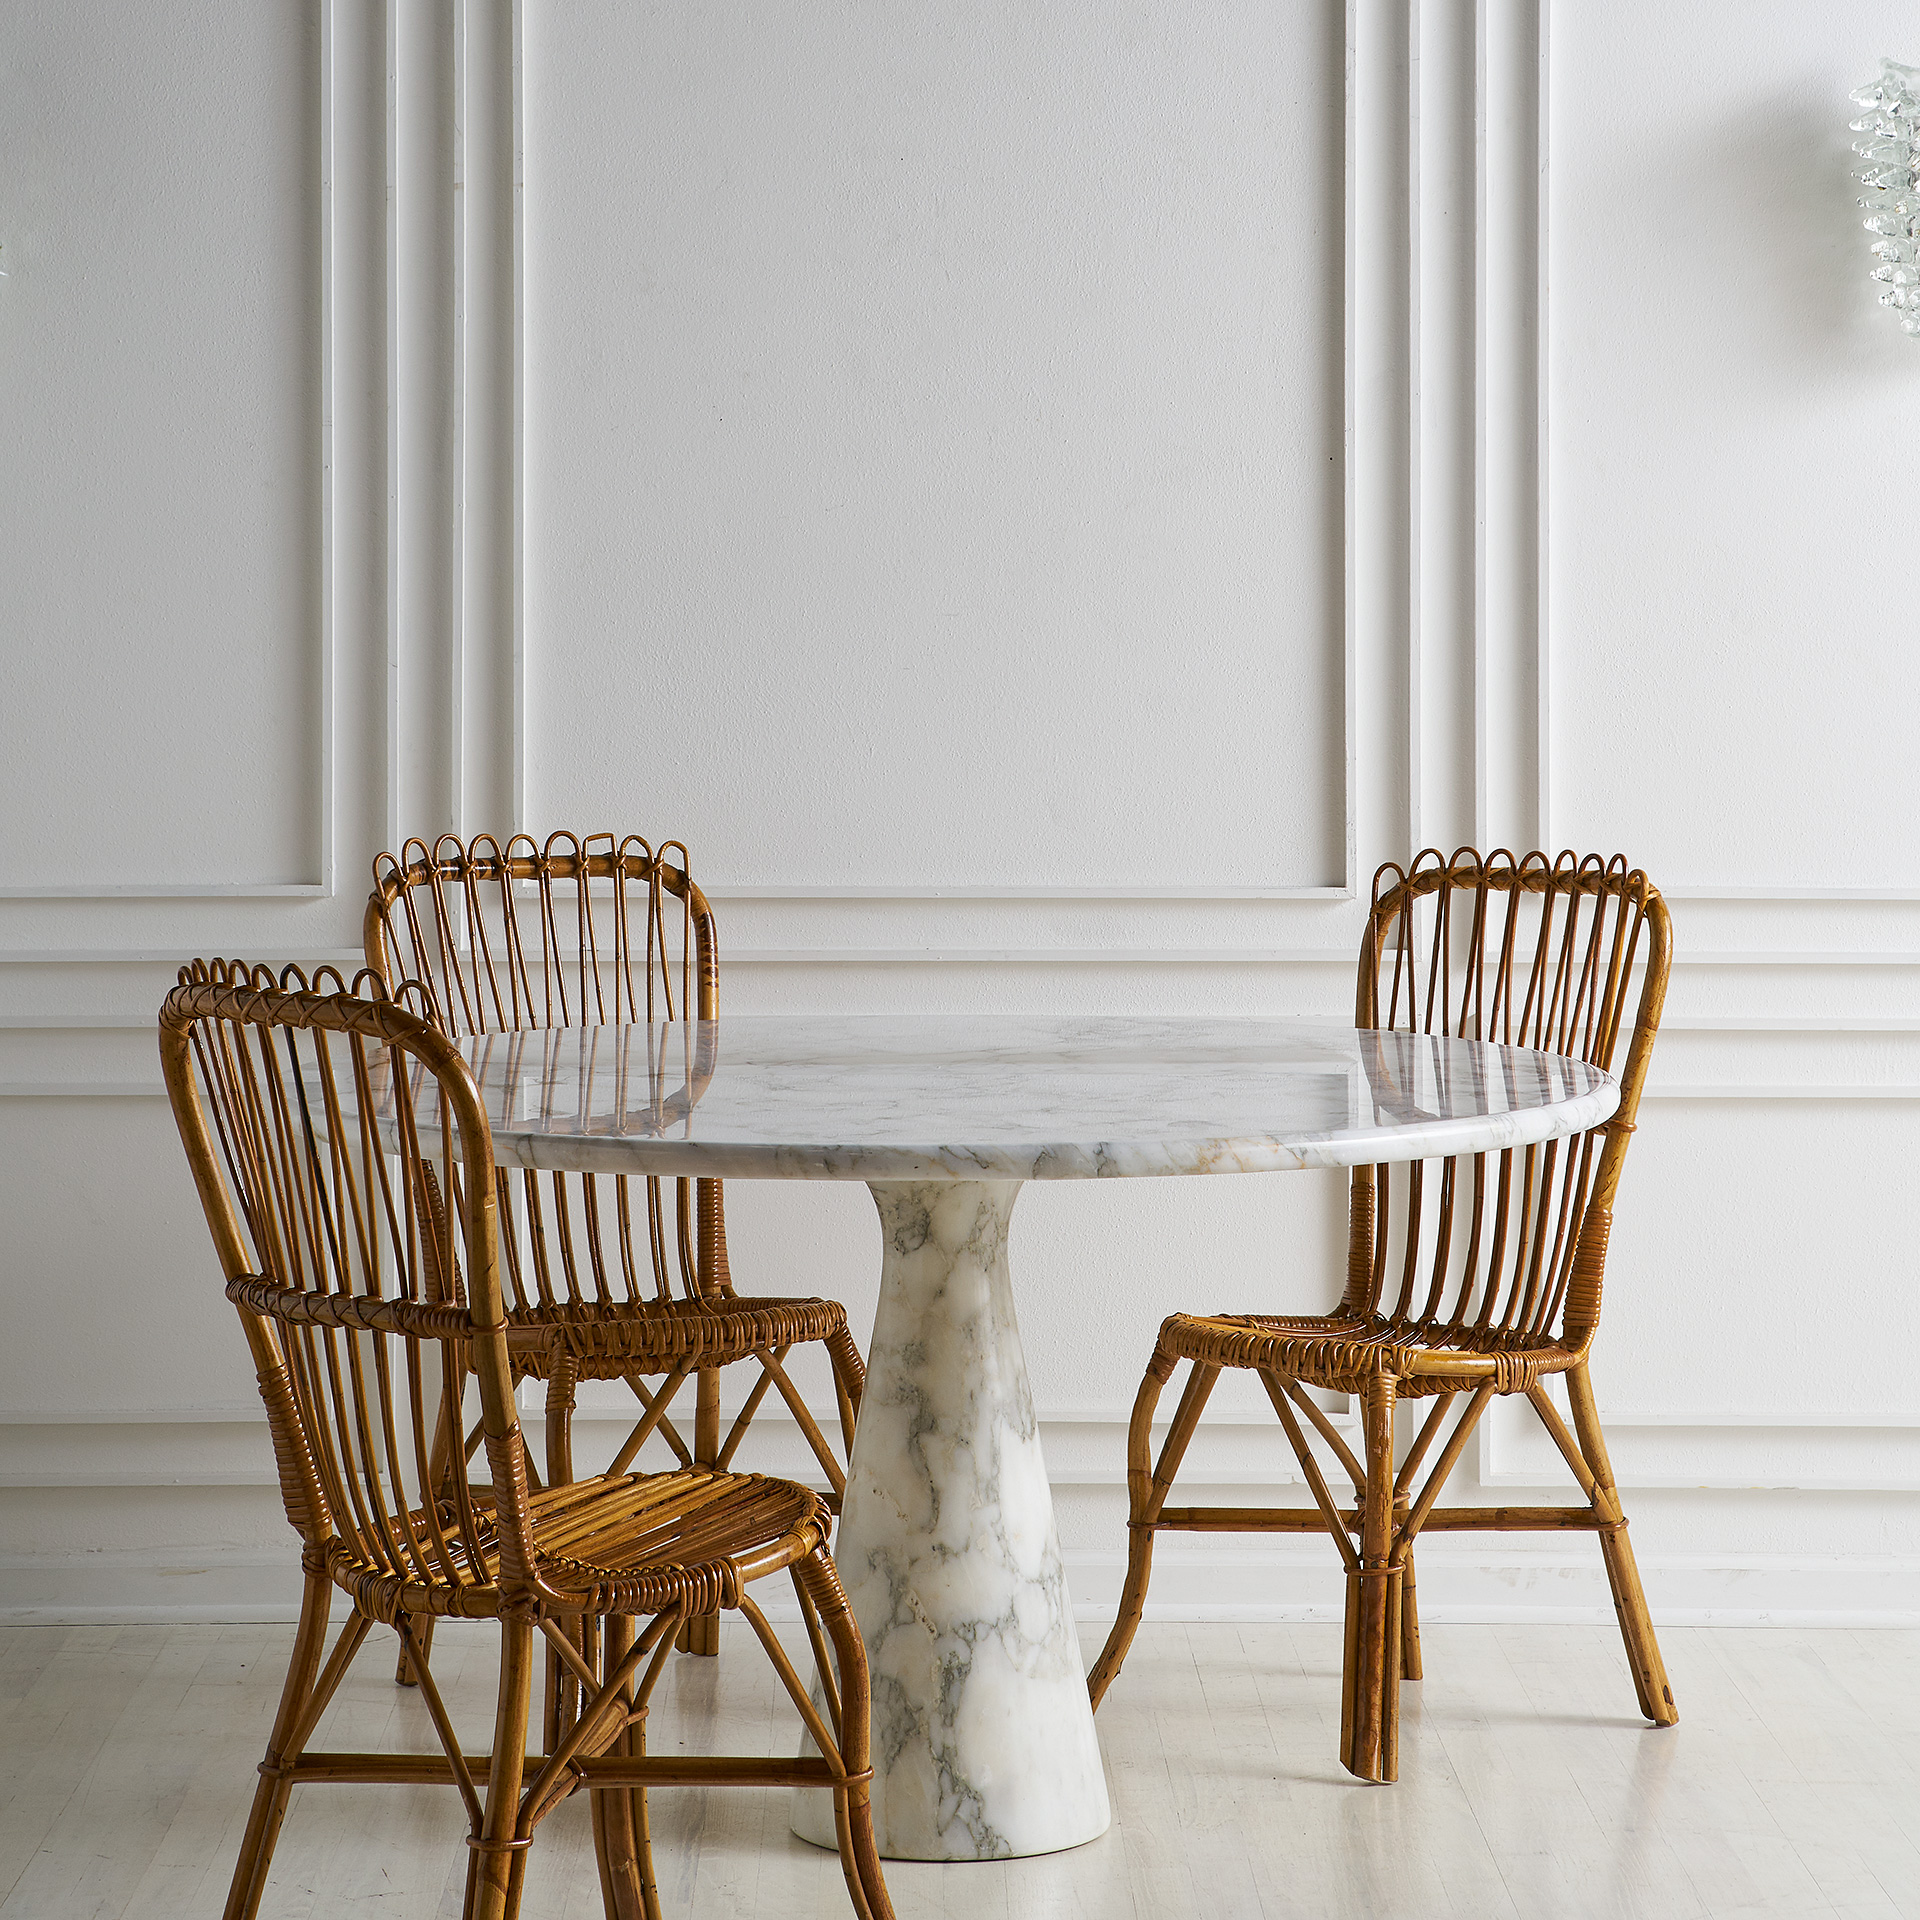 Picture of: Set Of 6 Bamboo And Rattan Dining Chairs Attributed To Bonacina South Loop Loft